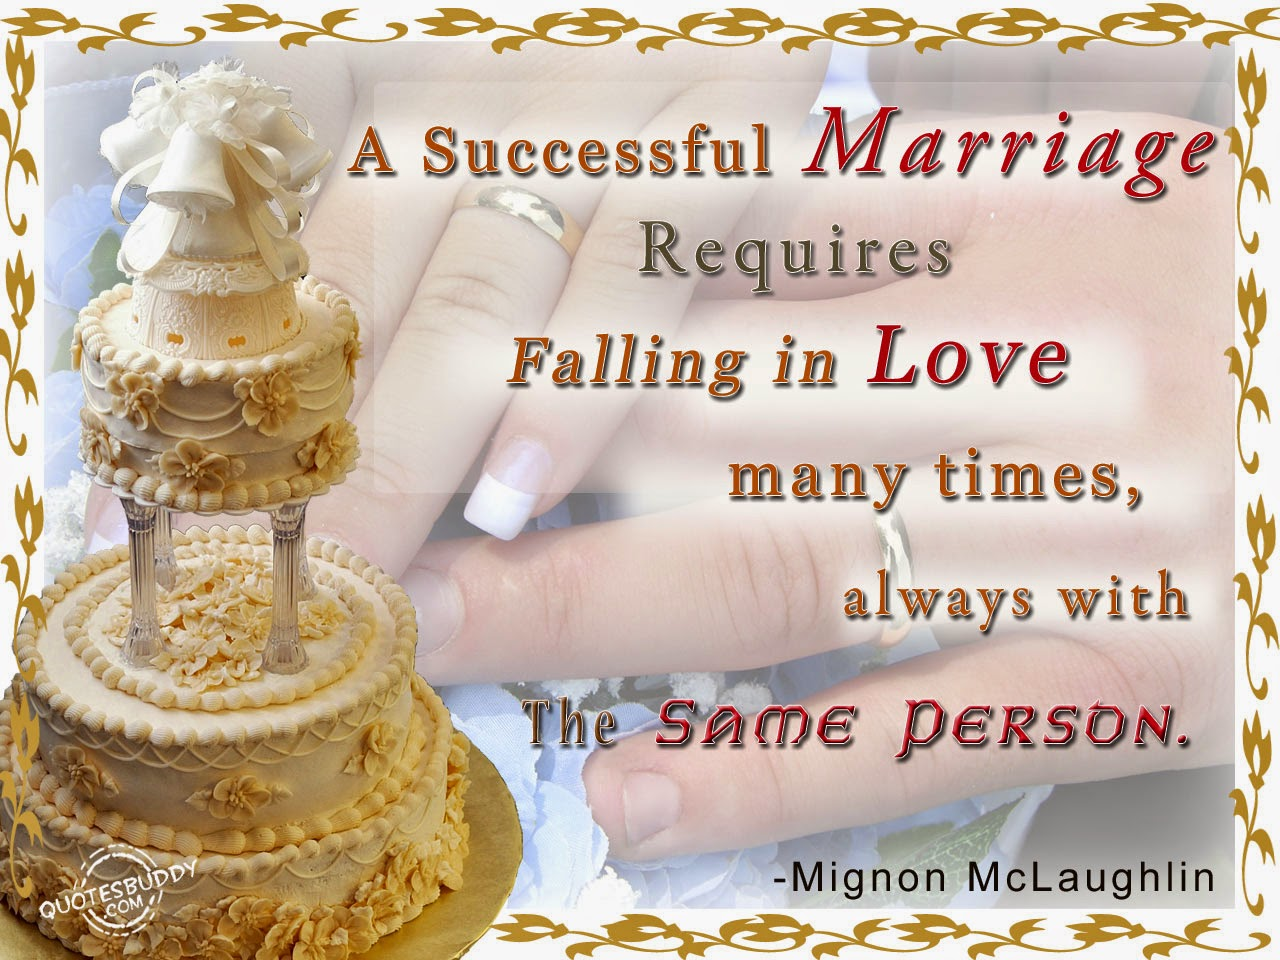 marriage quotes motivational pictures